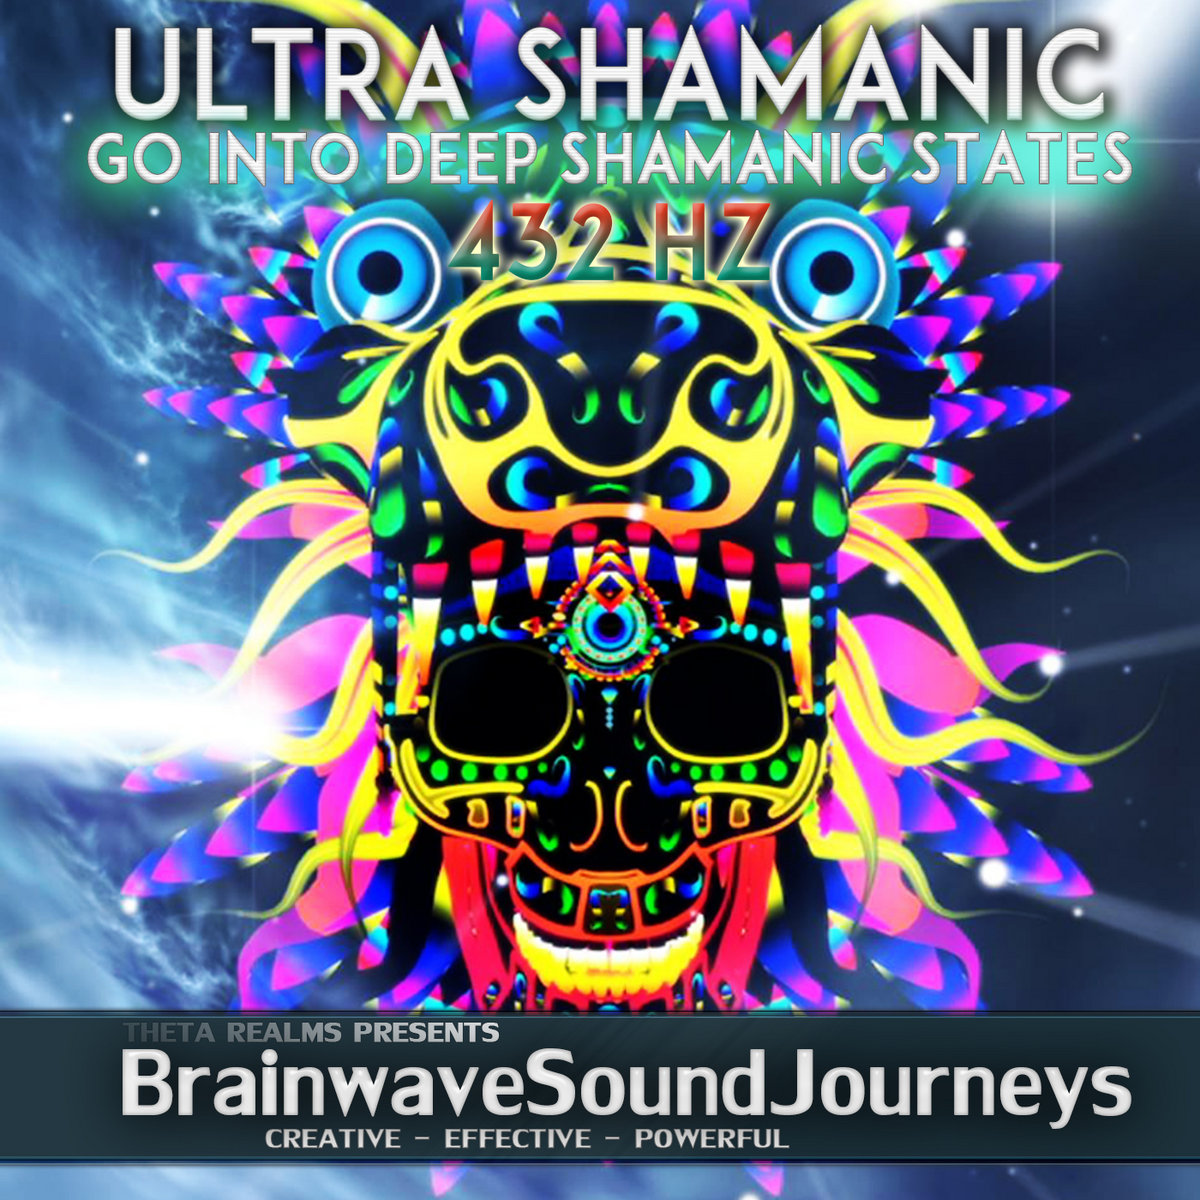 ULTRA SHAMANIC MEDITATION ♊ GO INTO A DEEP TRANCE | 6 3 HZ